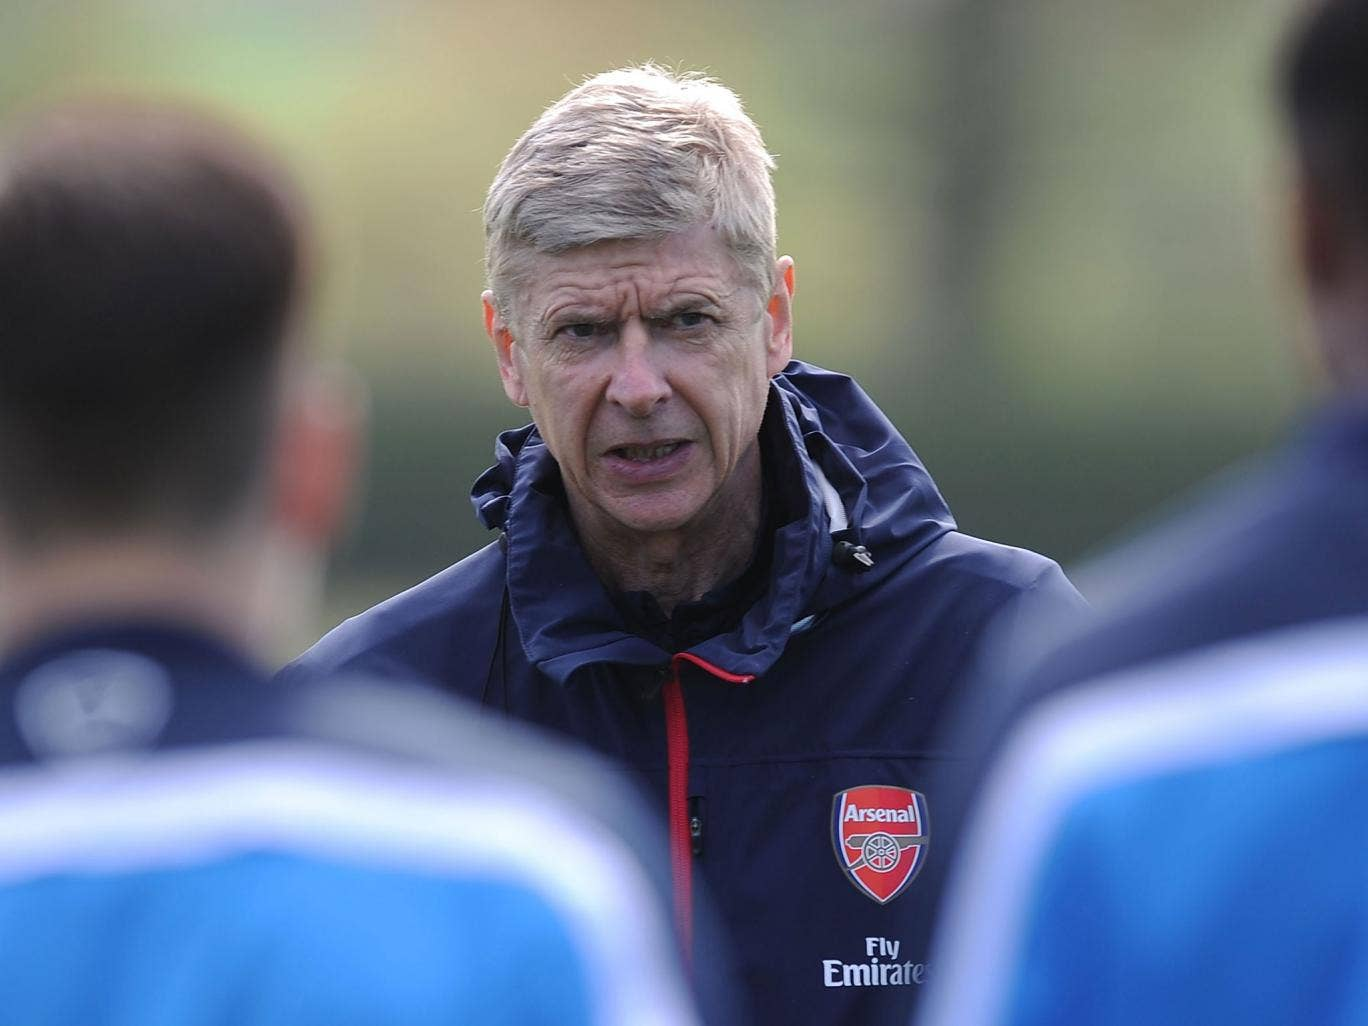 Wenger has been criticised during the Gunners' nine-year trophy drought